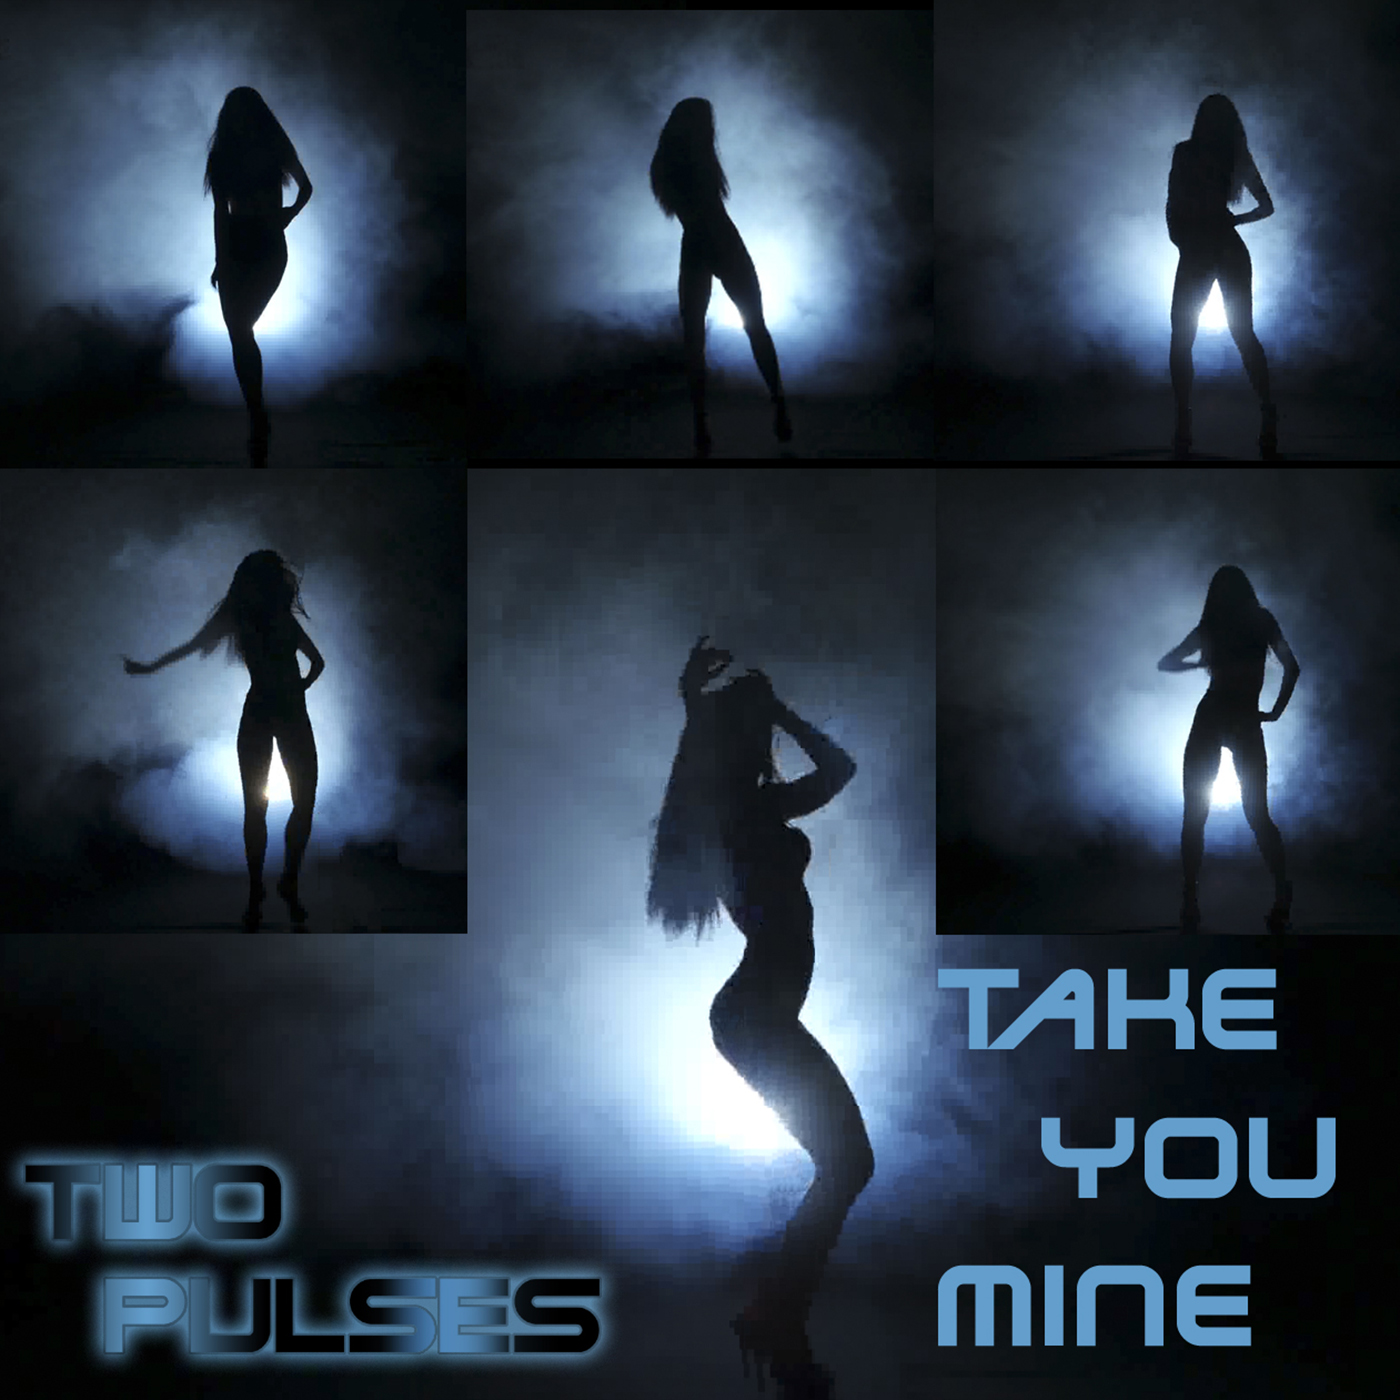 TAKE YOU MINE - Two Pulses (1400x1400)